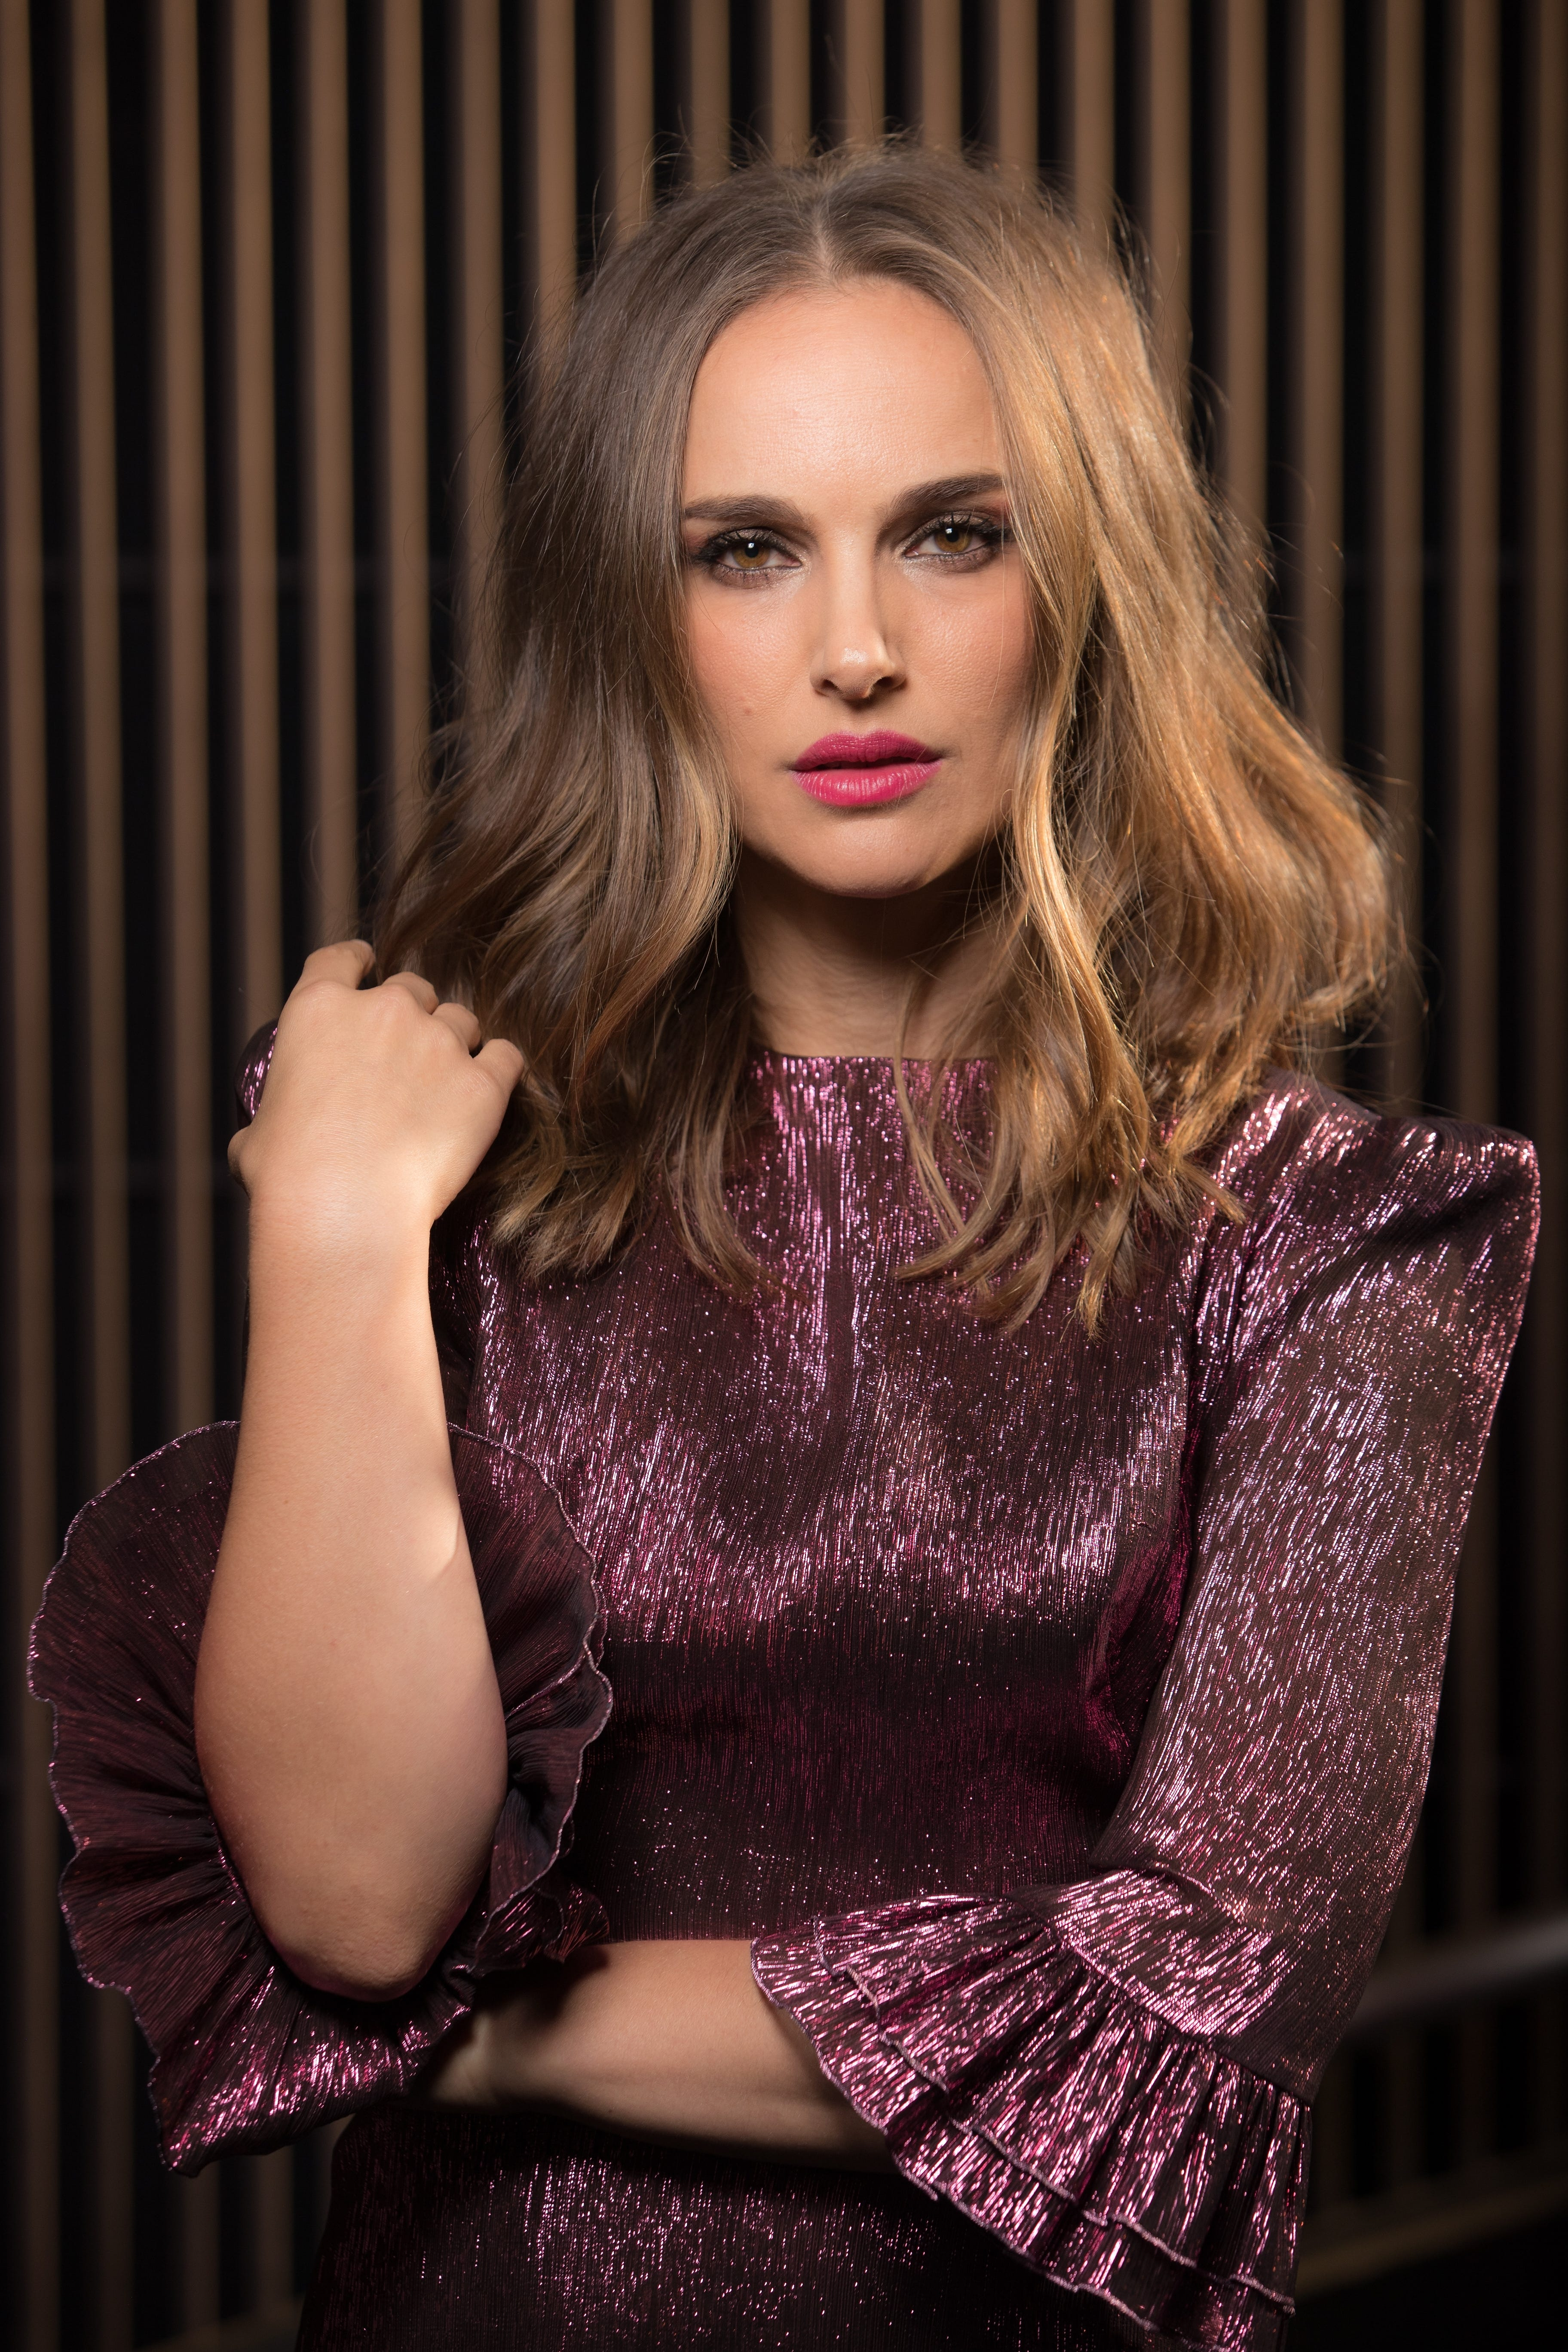 Natalie Portman says she was sexualized as a child star: 'That was not my doing'